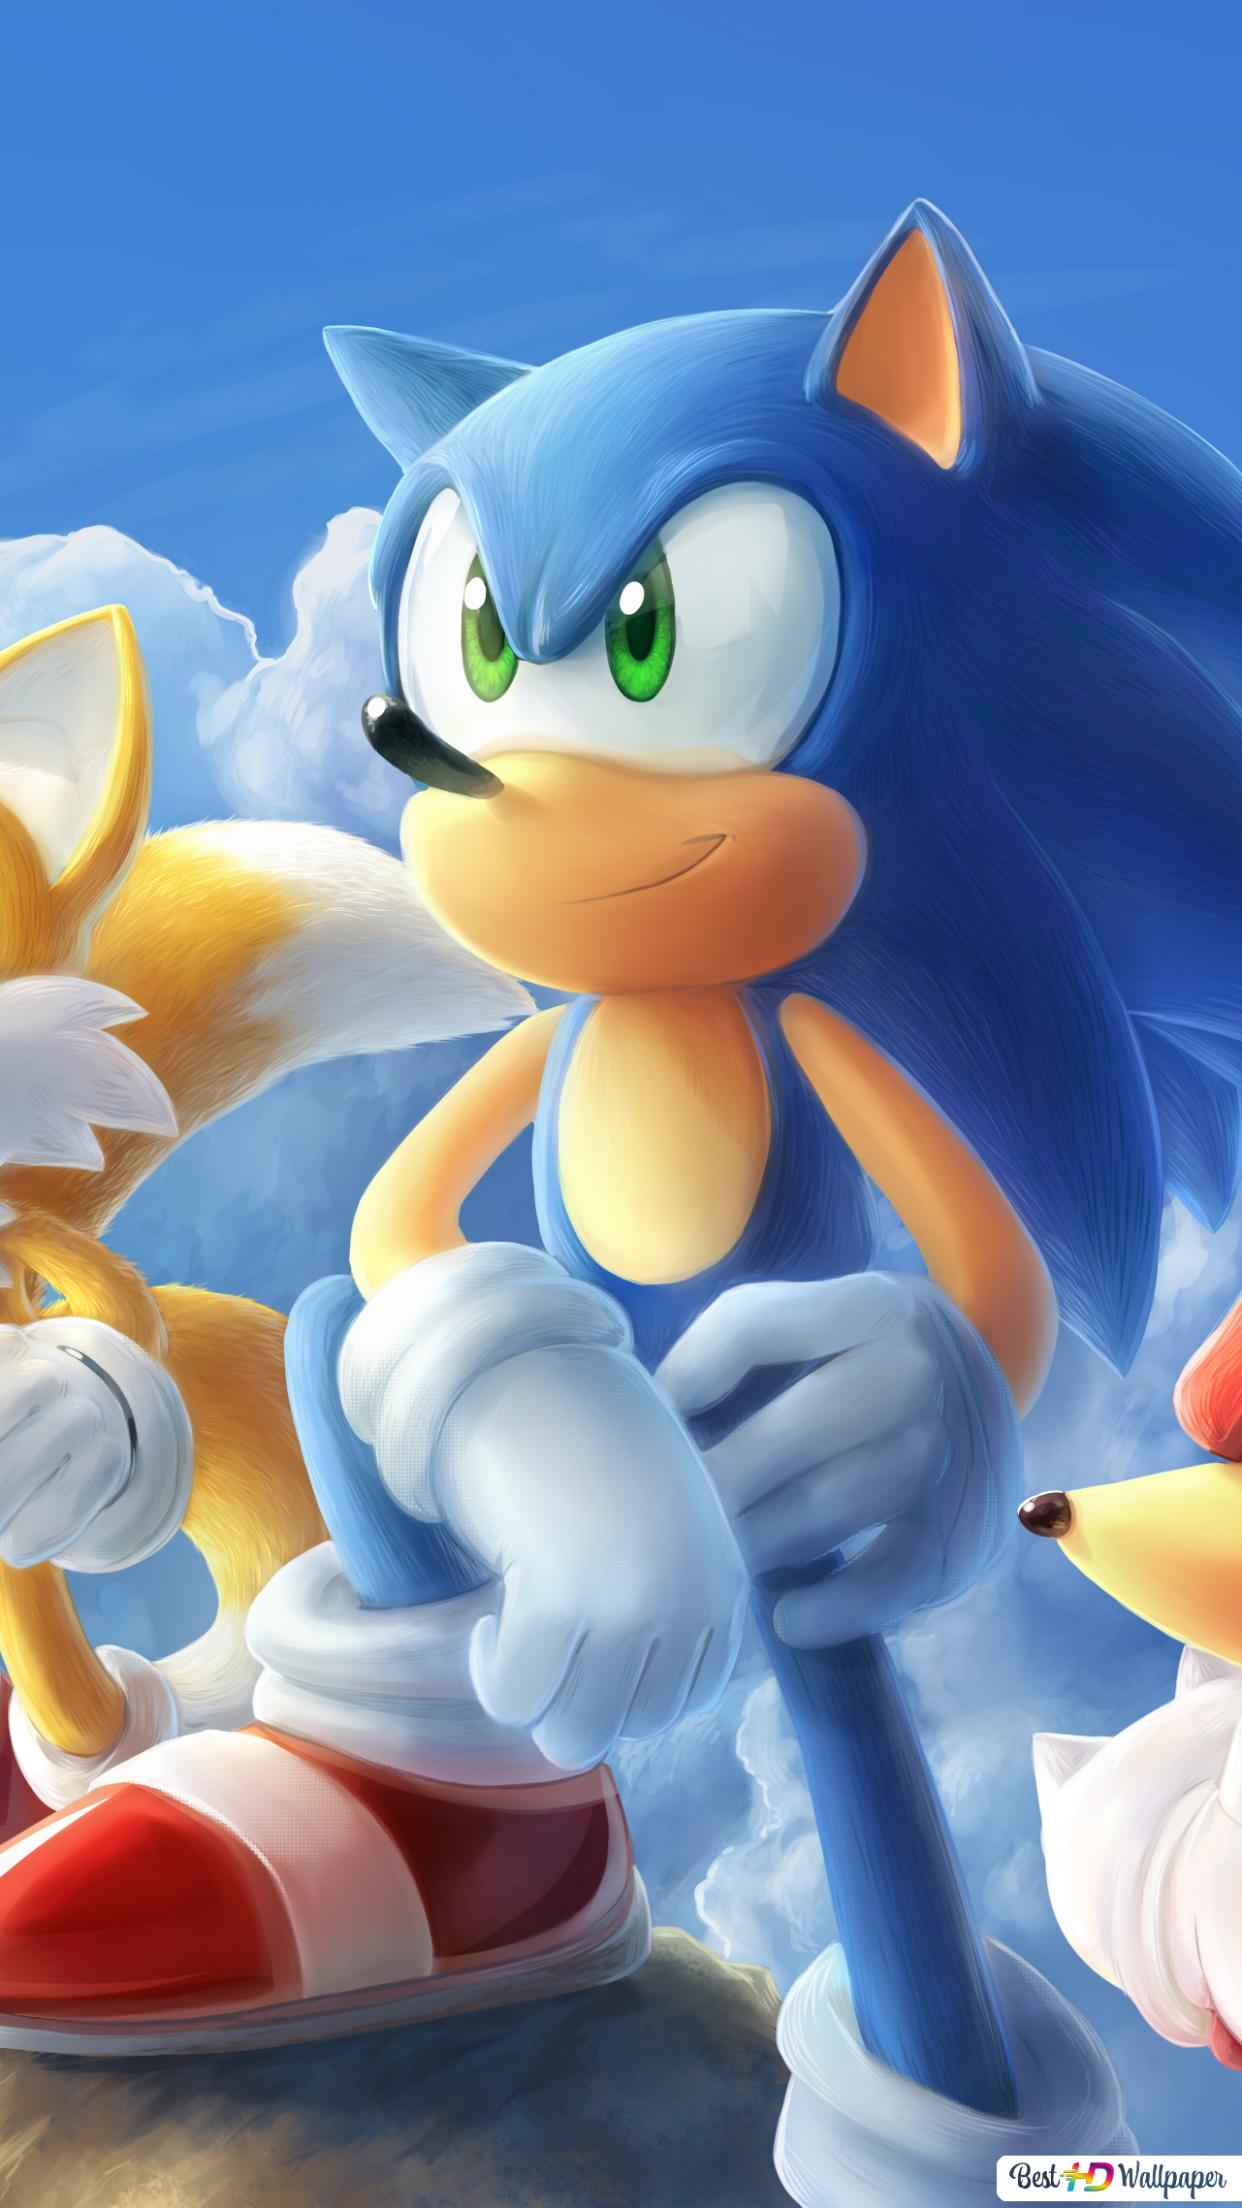 Prower Sonic The Hedgehog Hd Wallpaper Download